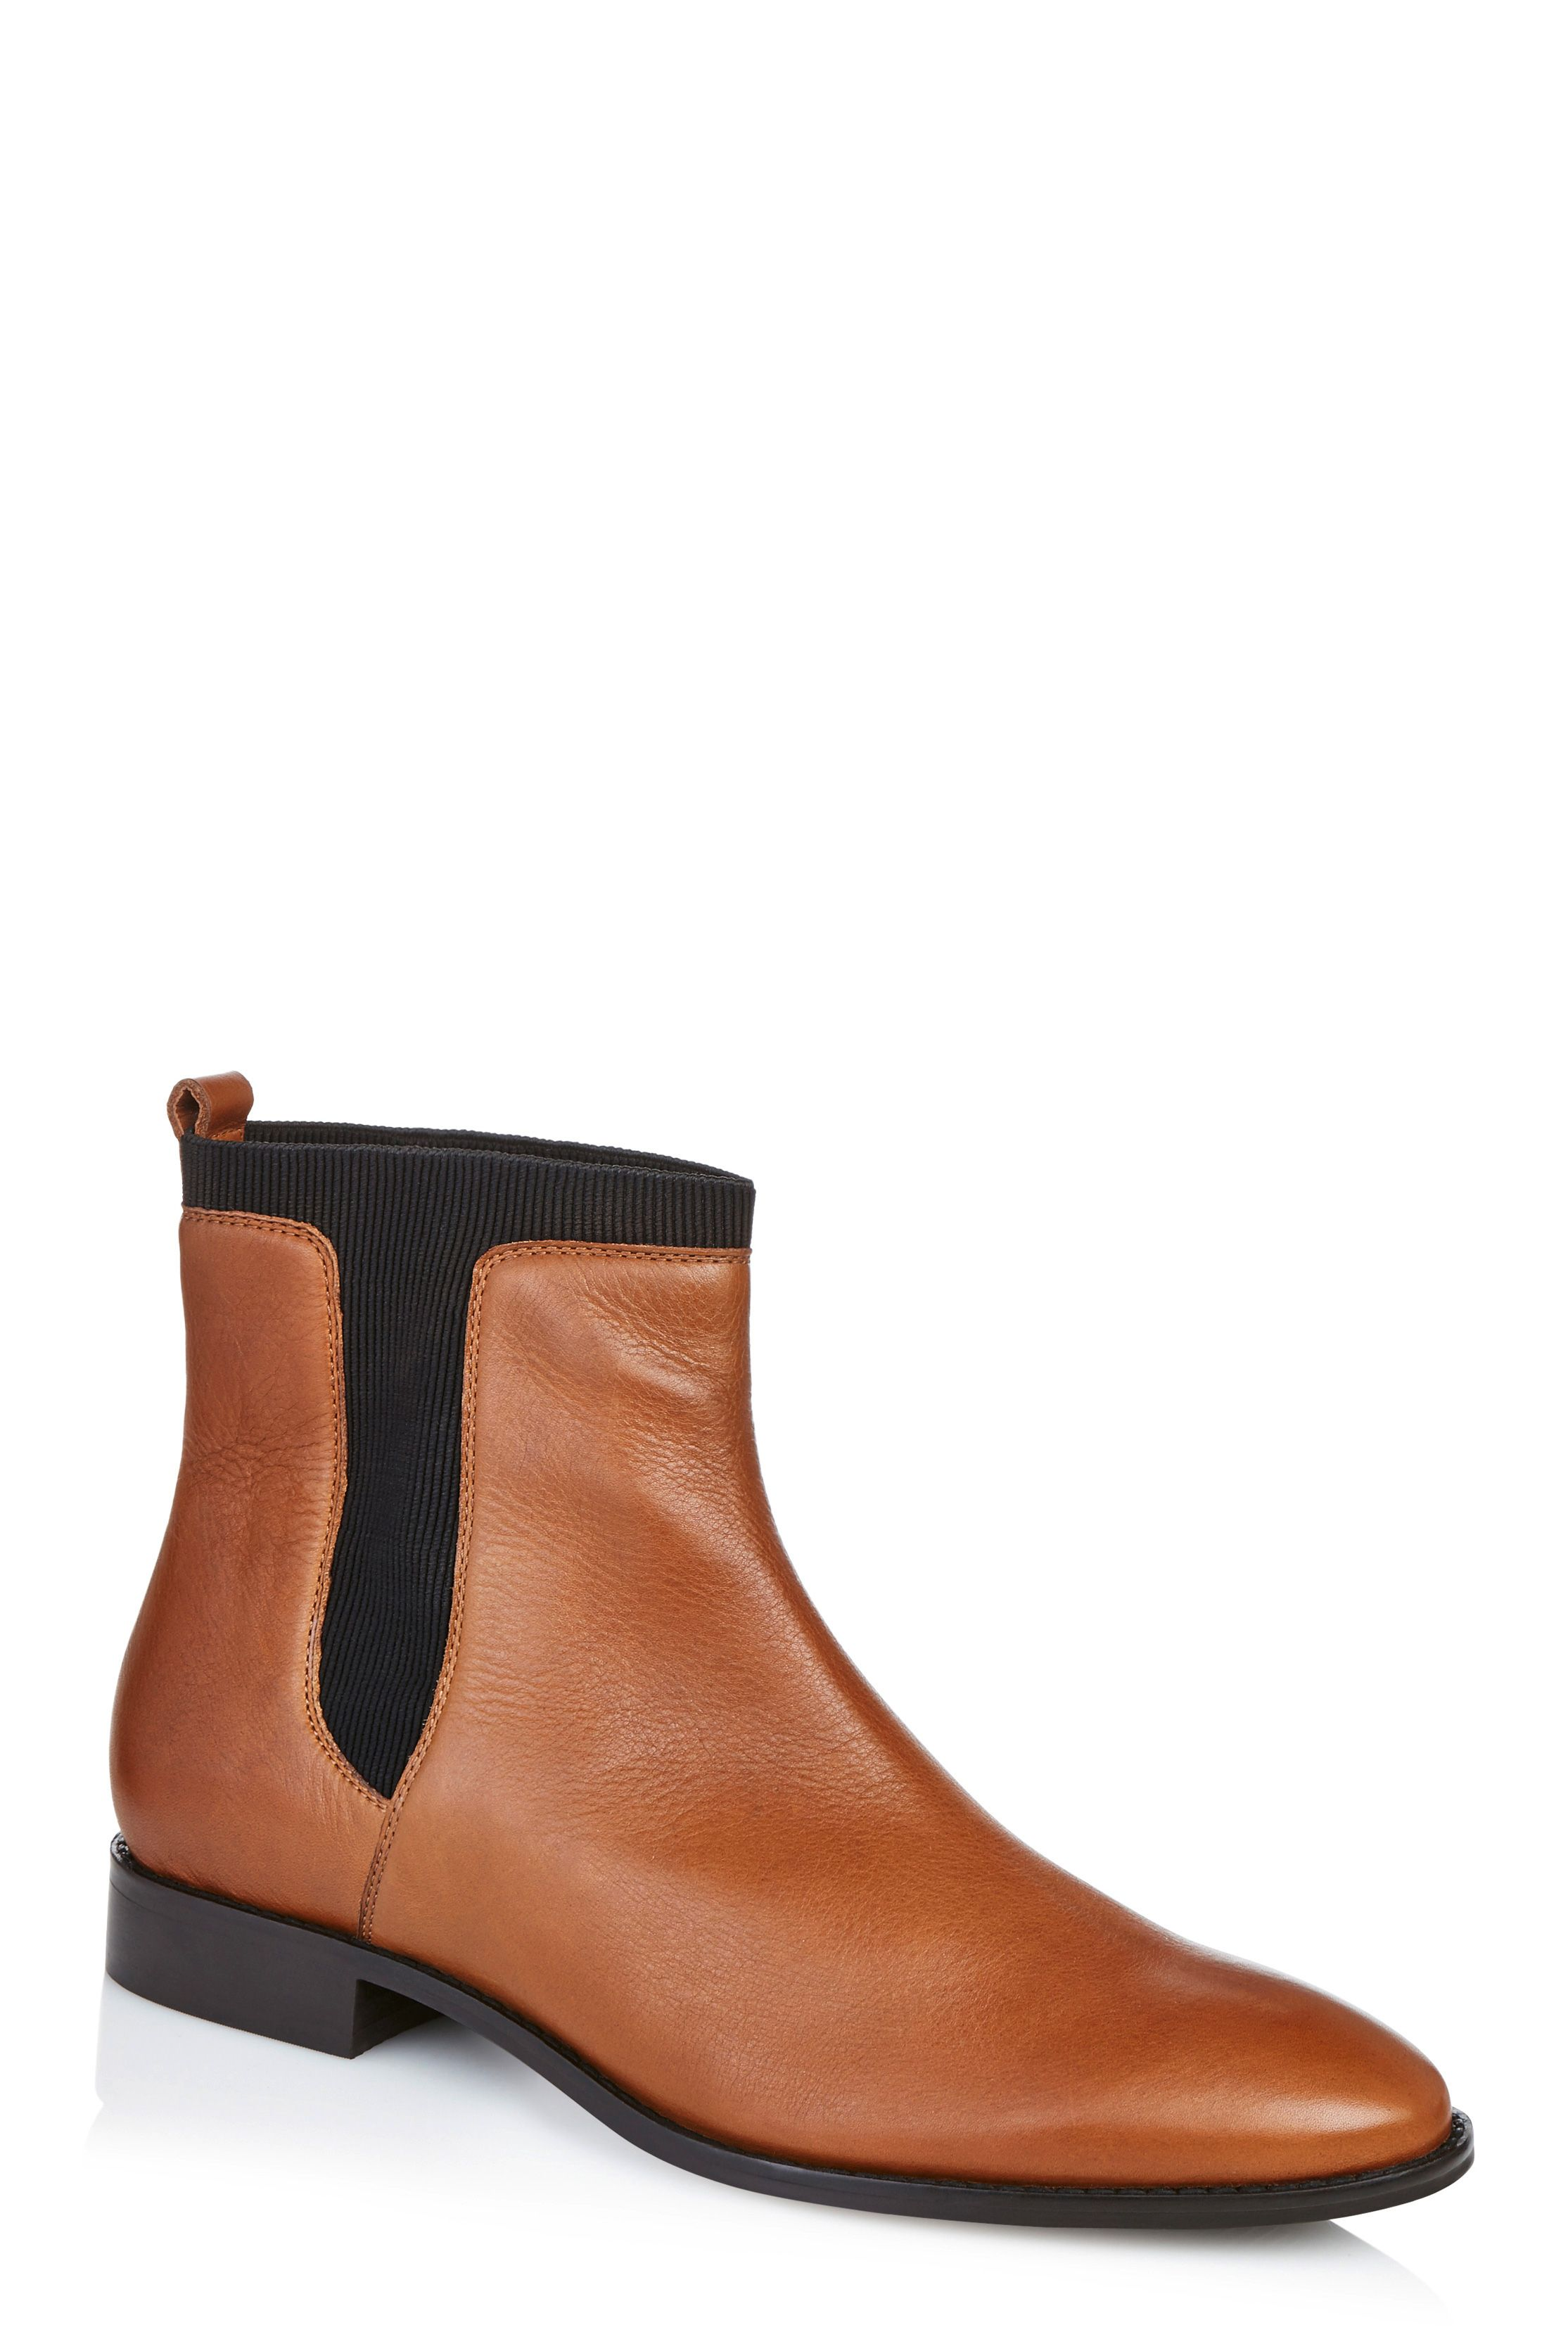 LTS Cesca Leather Chelsea Boot